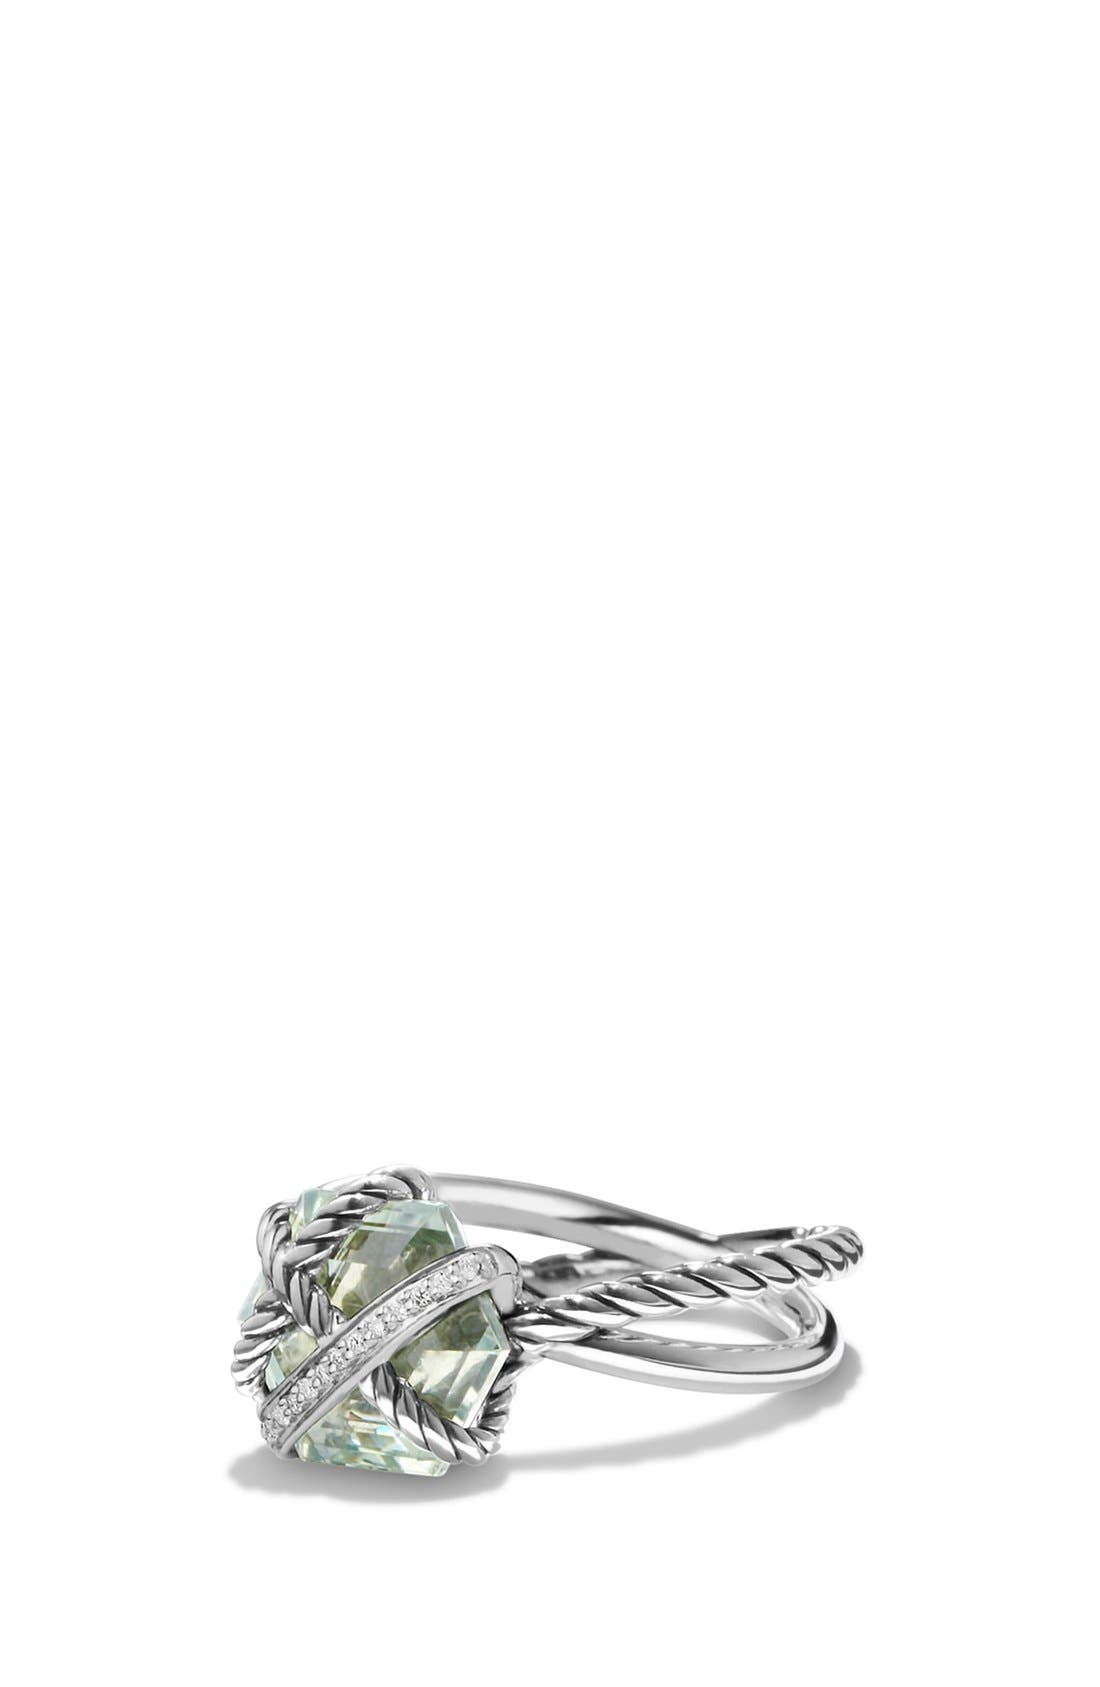 Cable Wrap Ring with Semiprecious Stone and Diamonds,                             Main thumbnail 1, color,                             Prasiolite